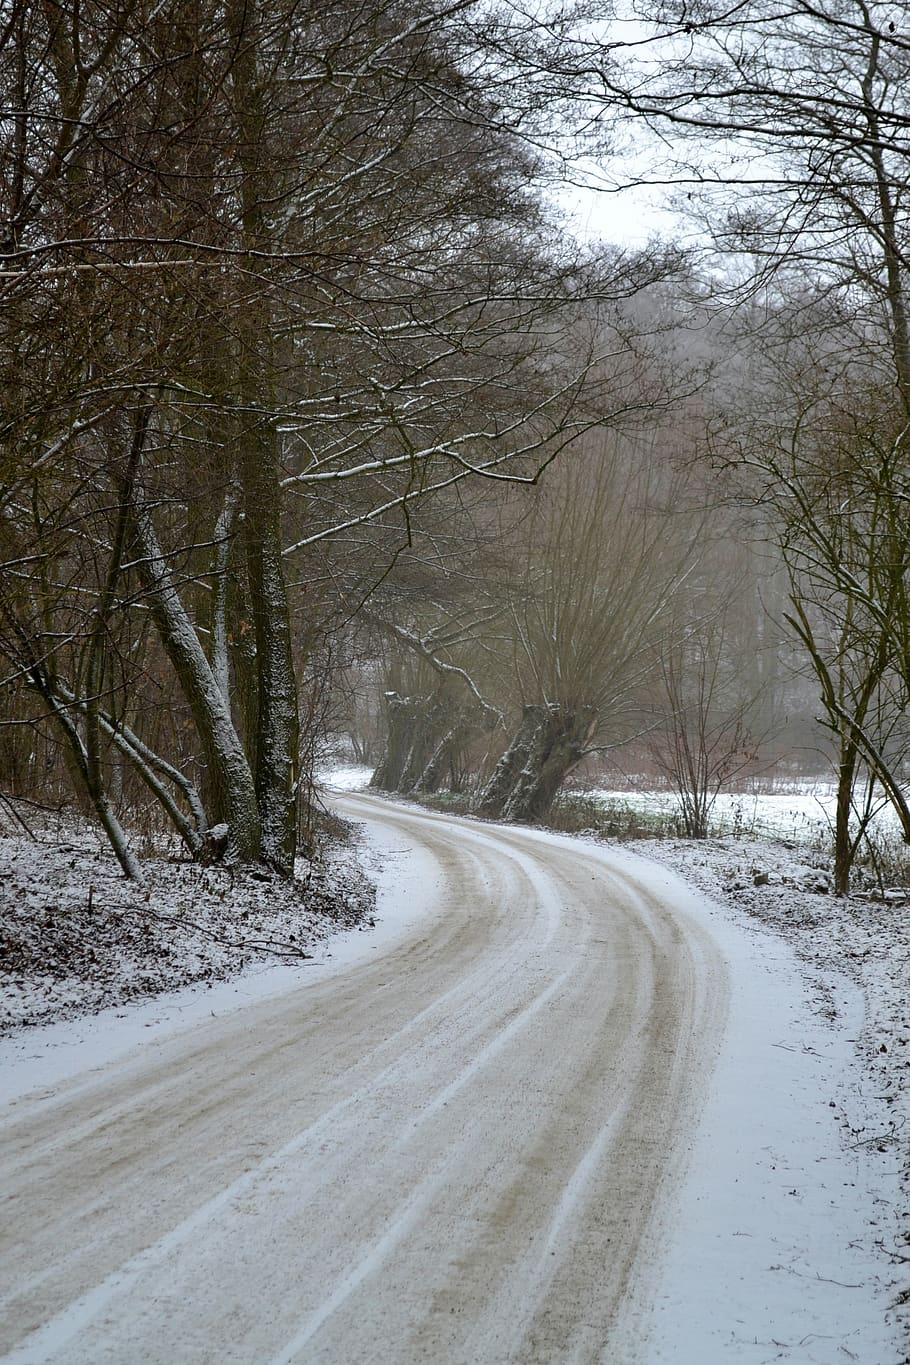 Winter, Snow, Landscape, Nature, Forest, The Path, - HD Wallpaper